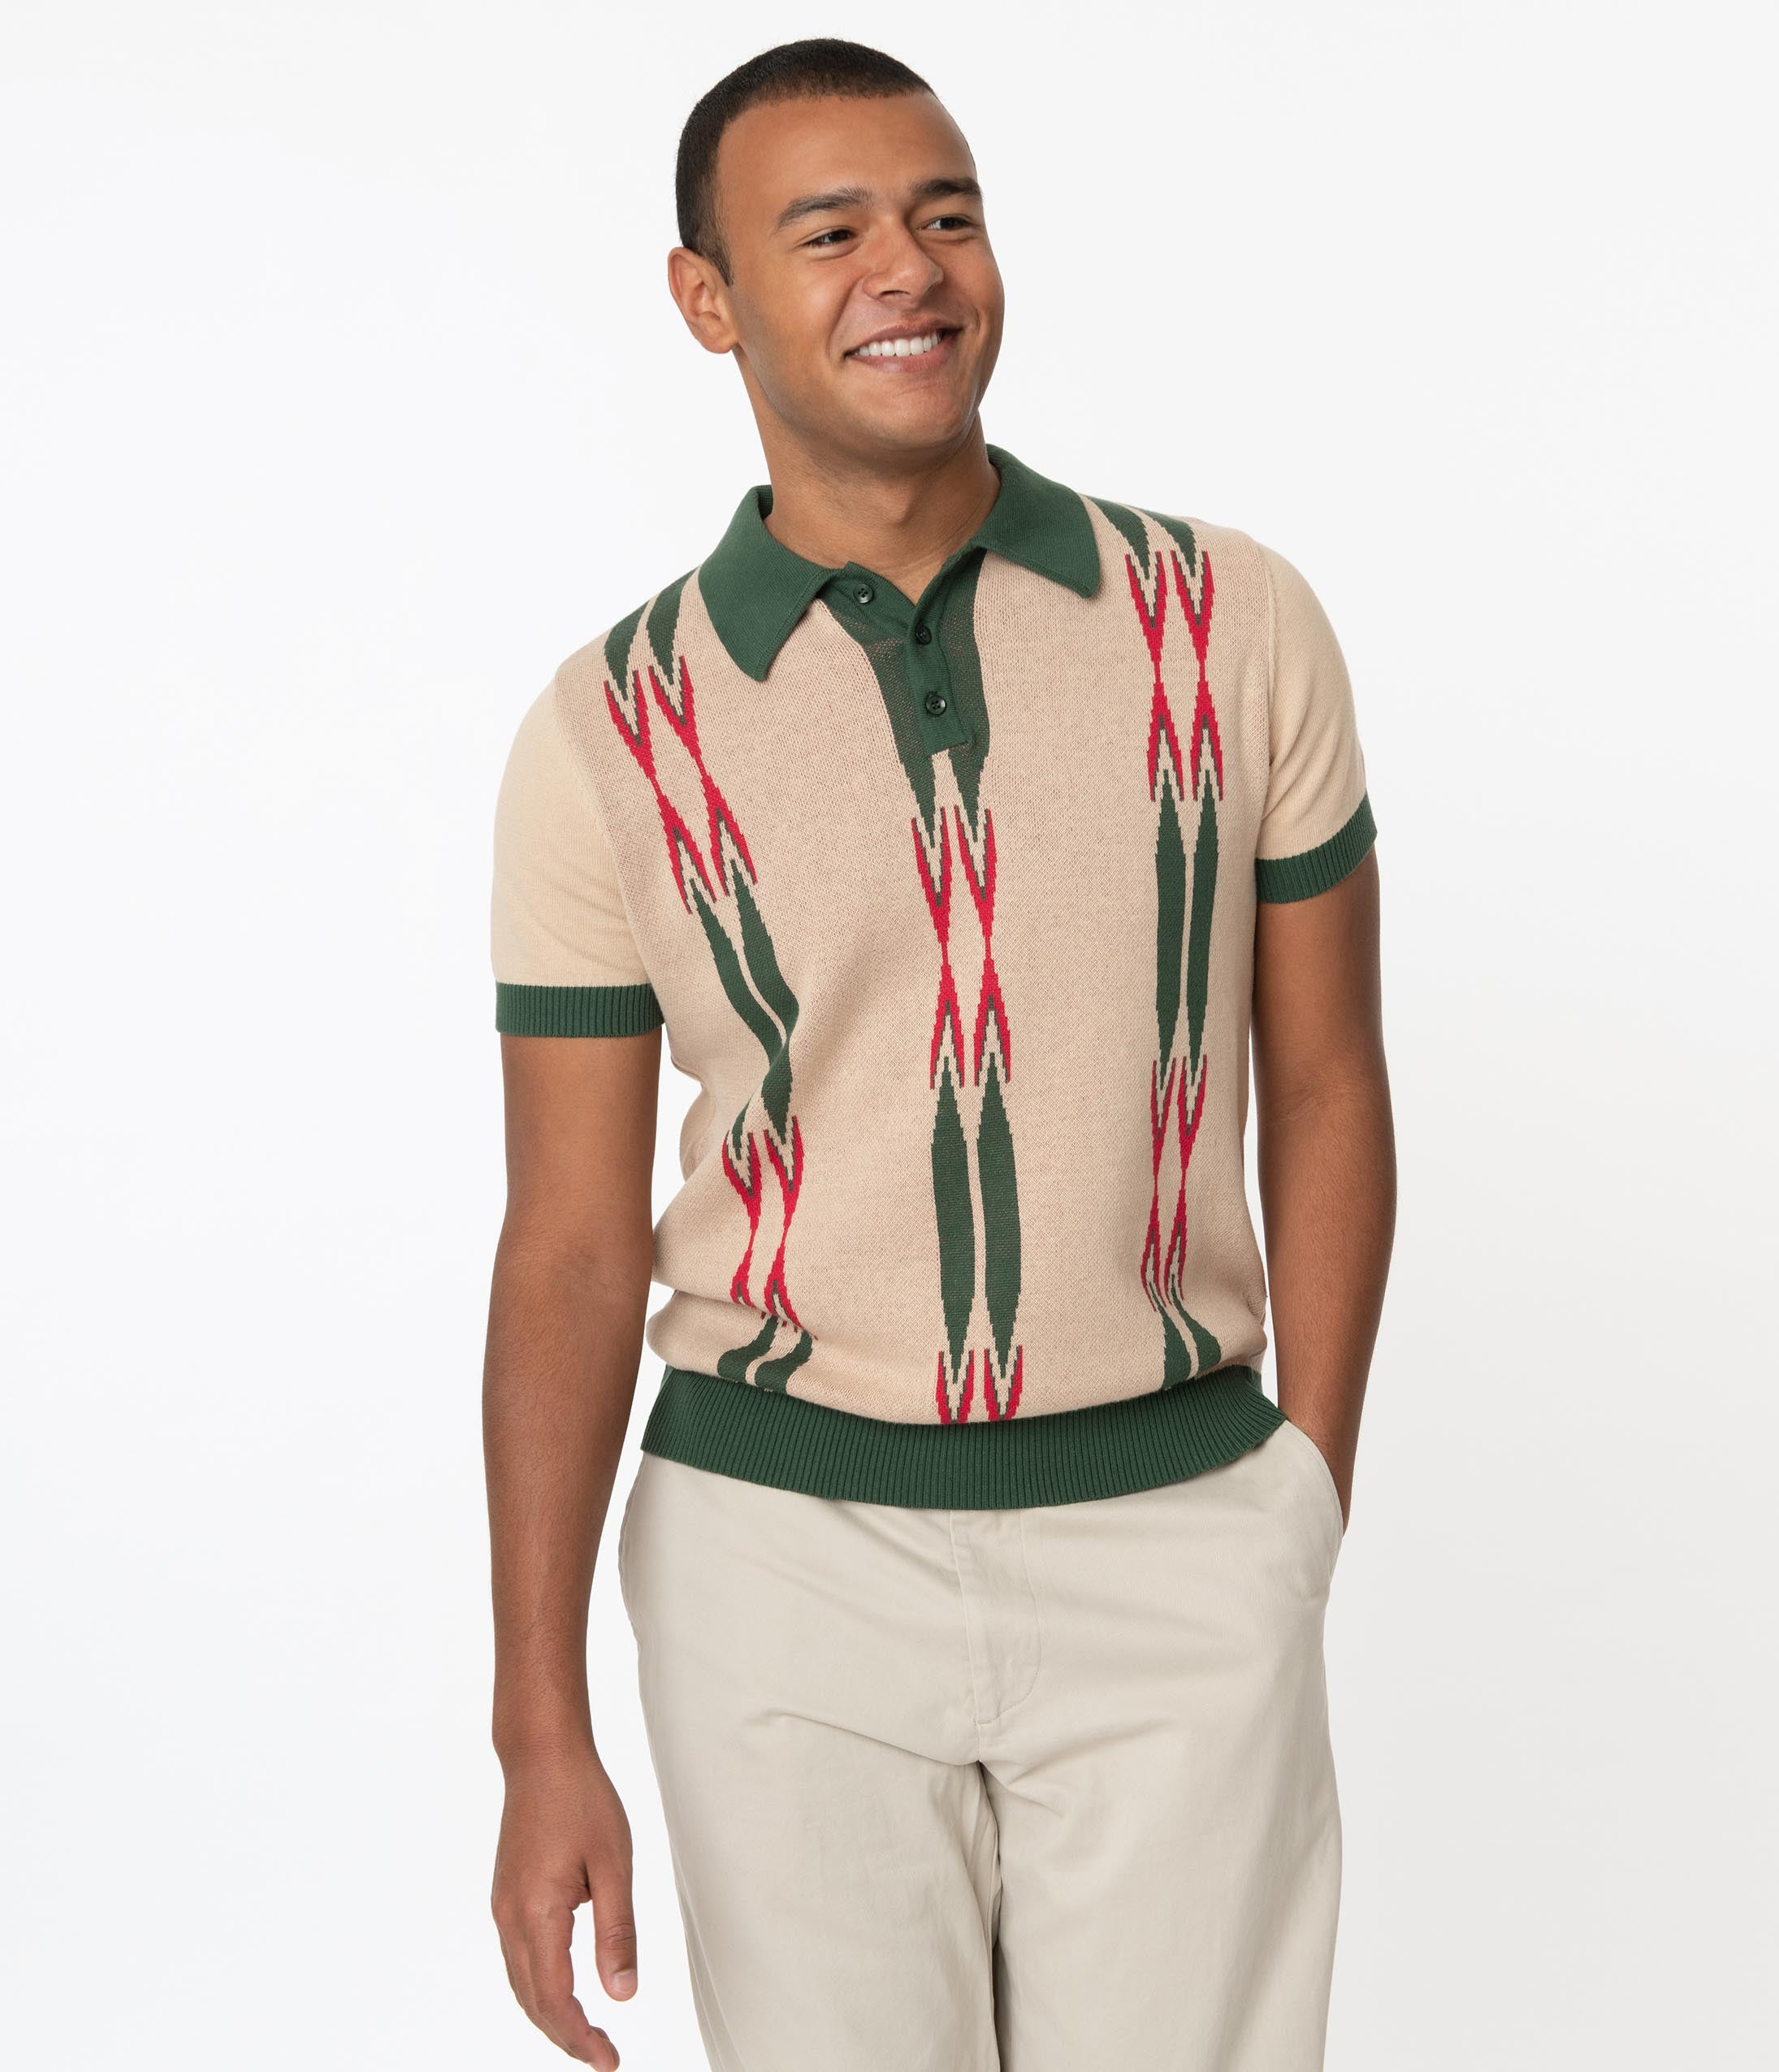 1960s Men's Clothing Collectif Beige Green Marylebone Pablo Mens Polo Shirt $66.00 AT vintagedancer.com